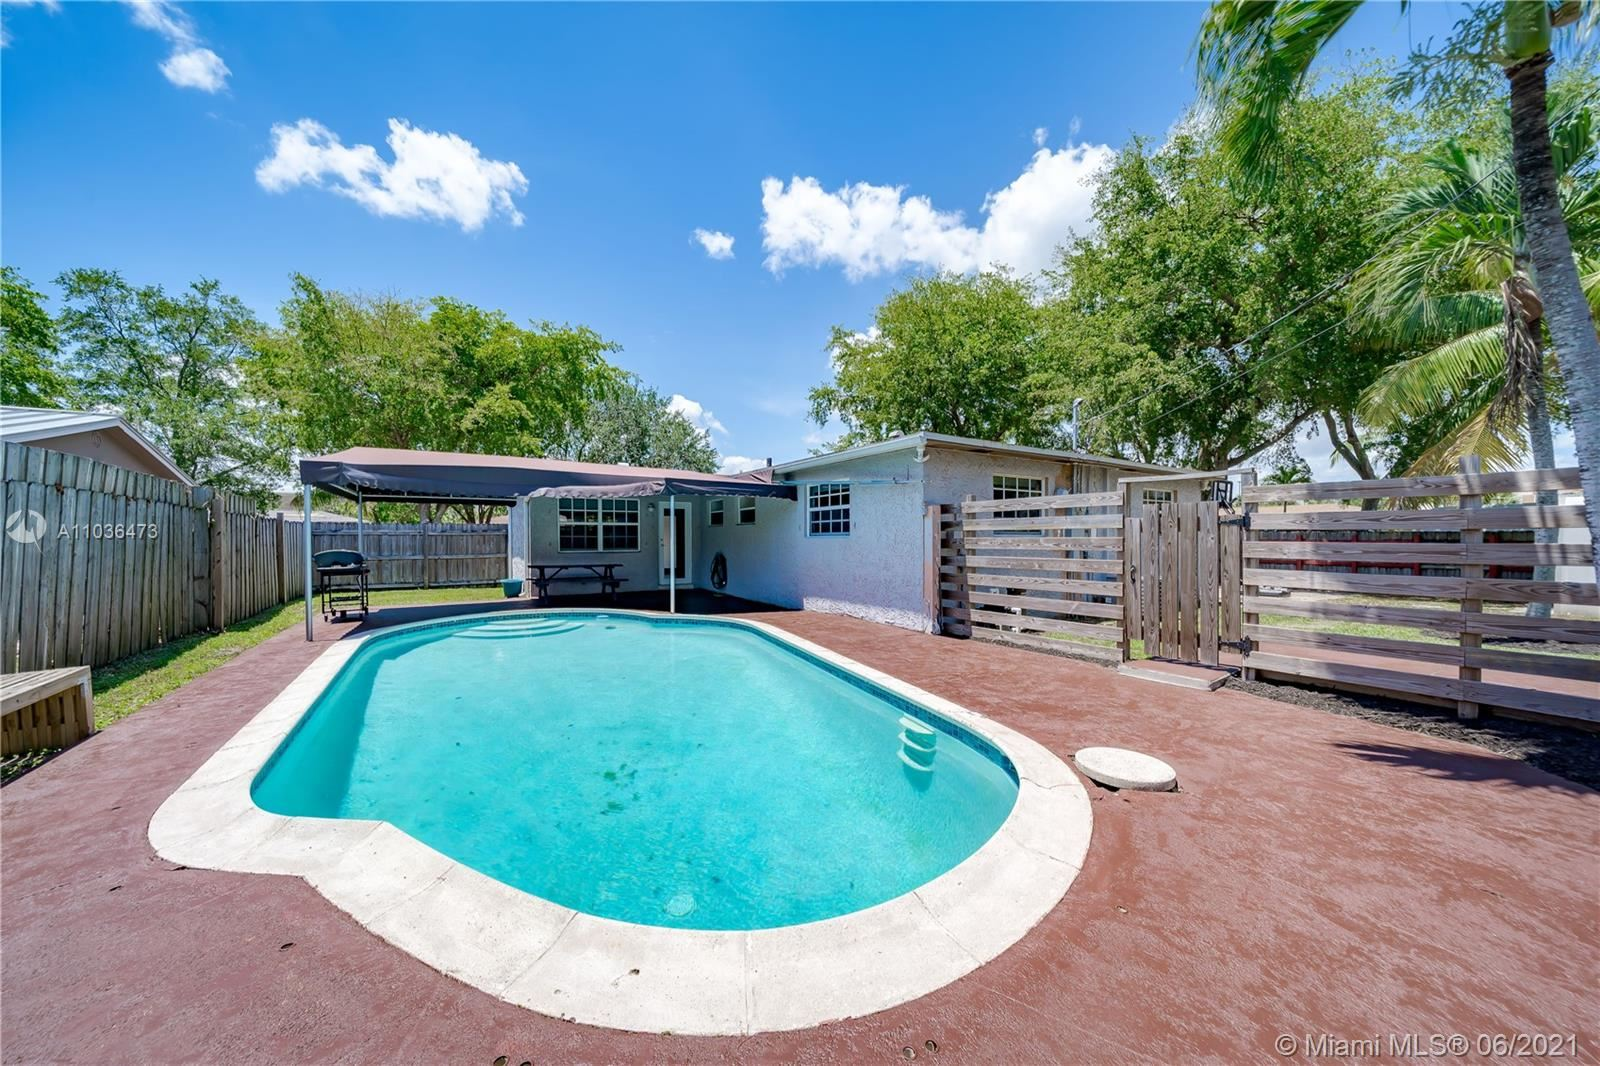 503 S 58th Ter, Hollywood, FL 33023 - #: A11036473